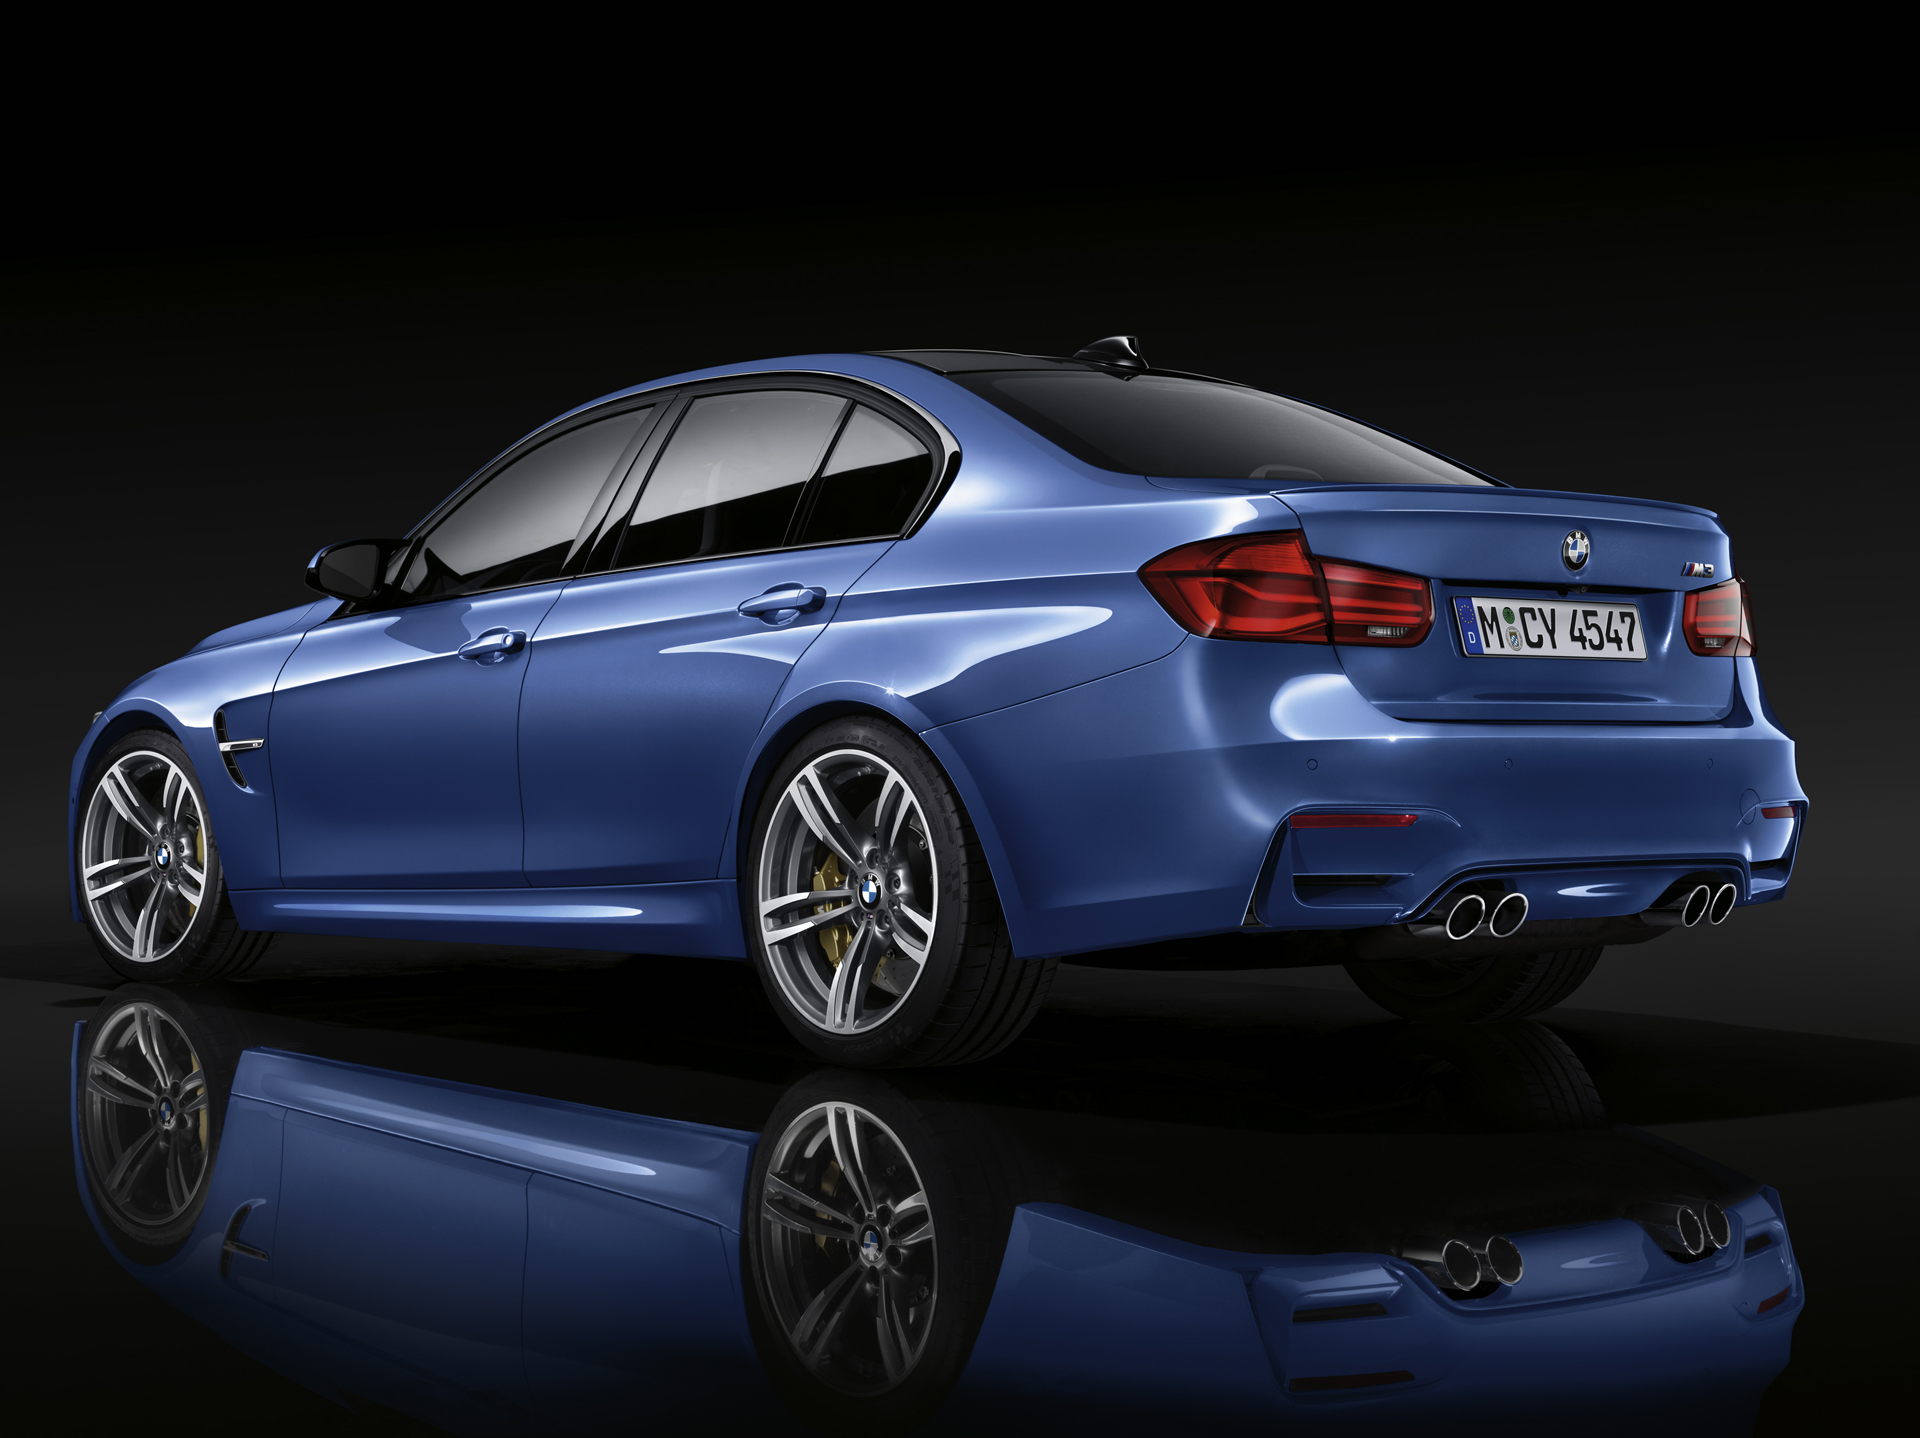 2016 Bmw M3 Sedan Lci Officialy Revealed